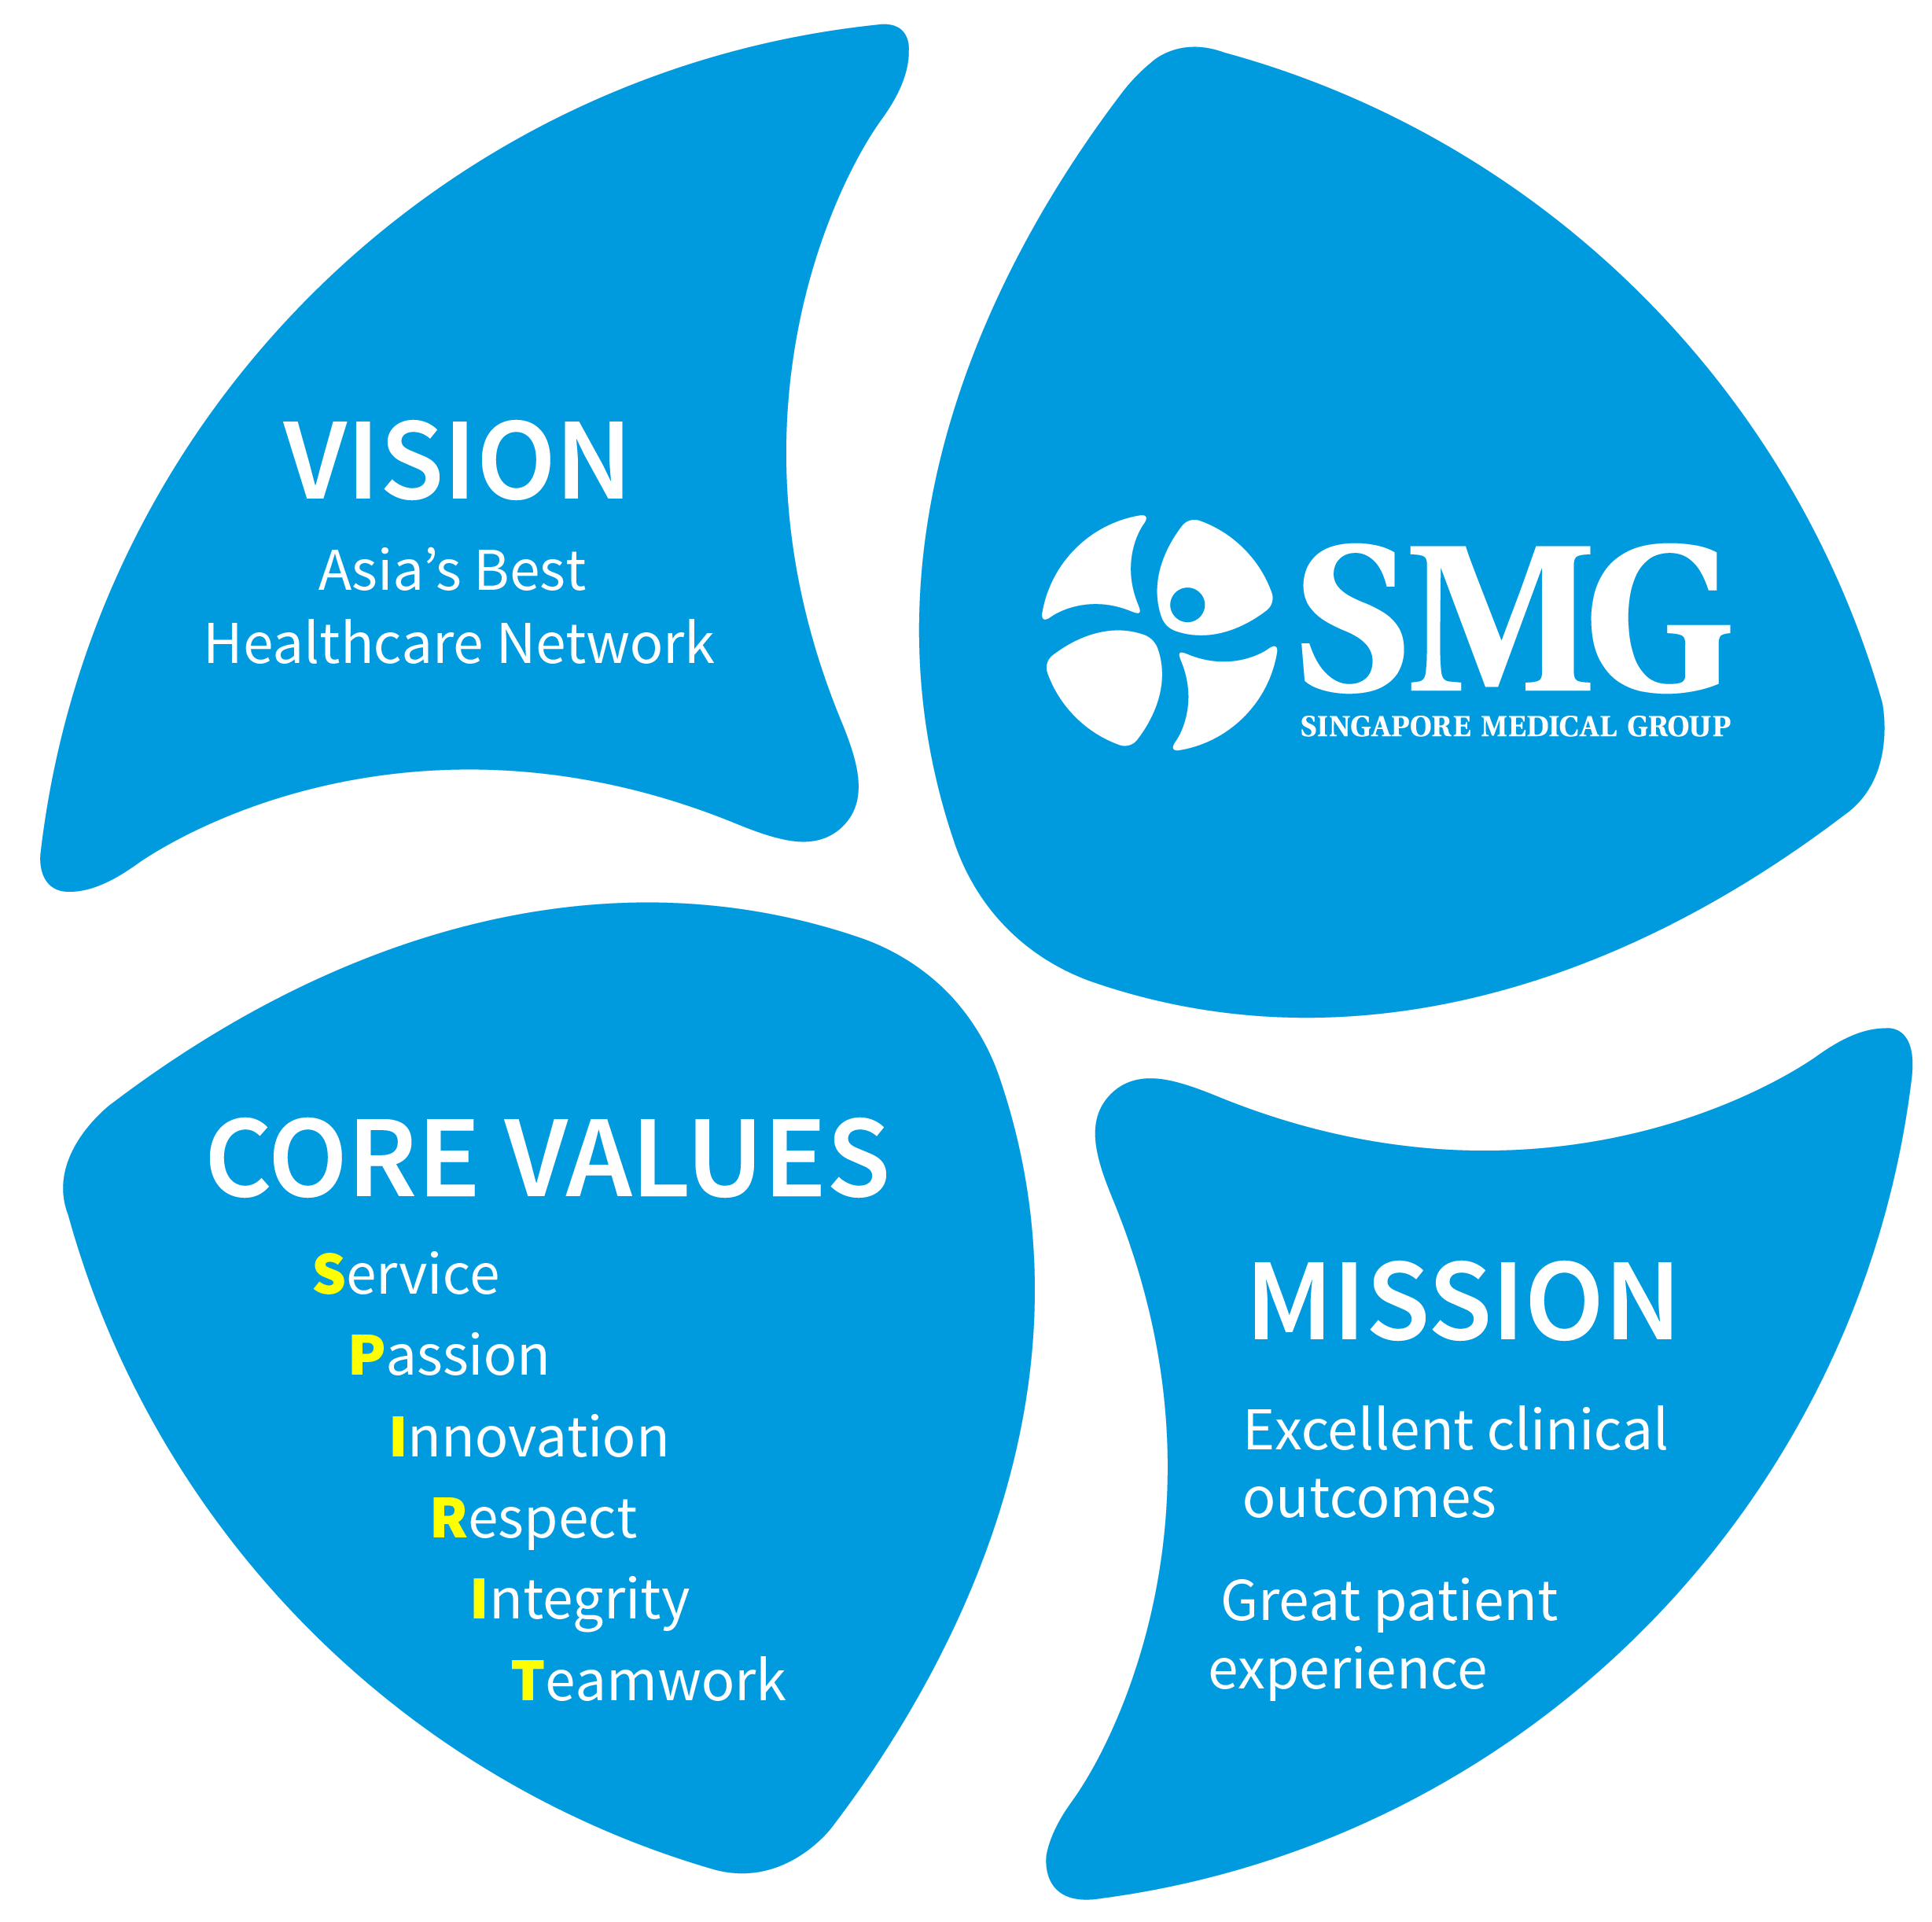 SMG_corporate-value_pengganti-klinik-kami(1)